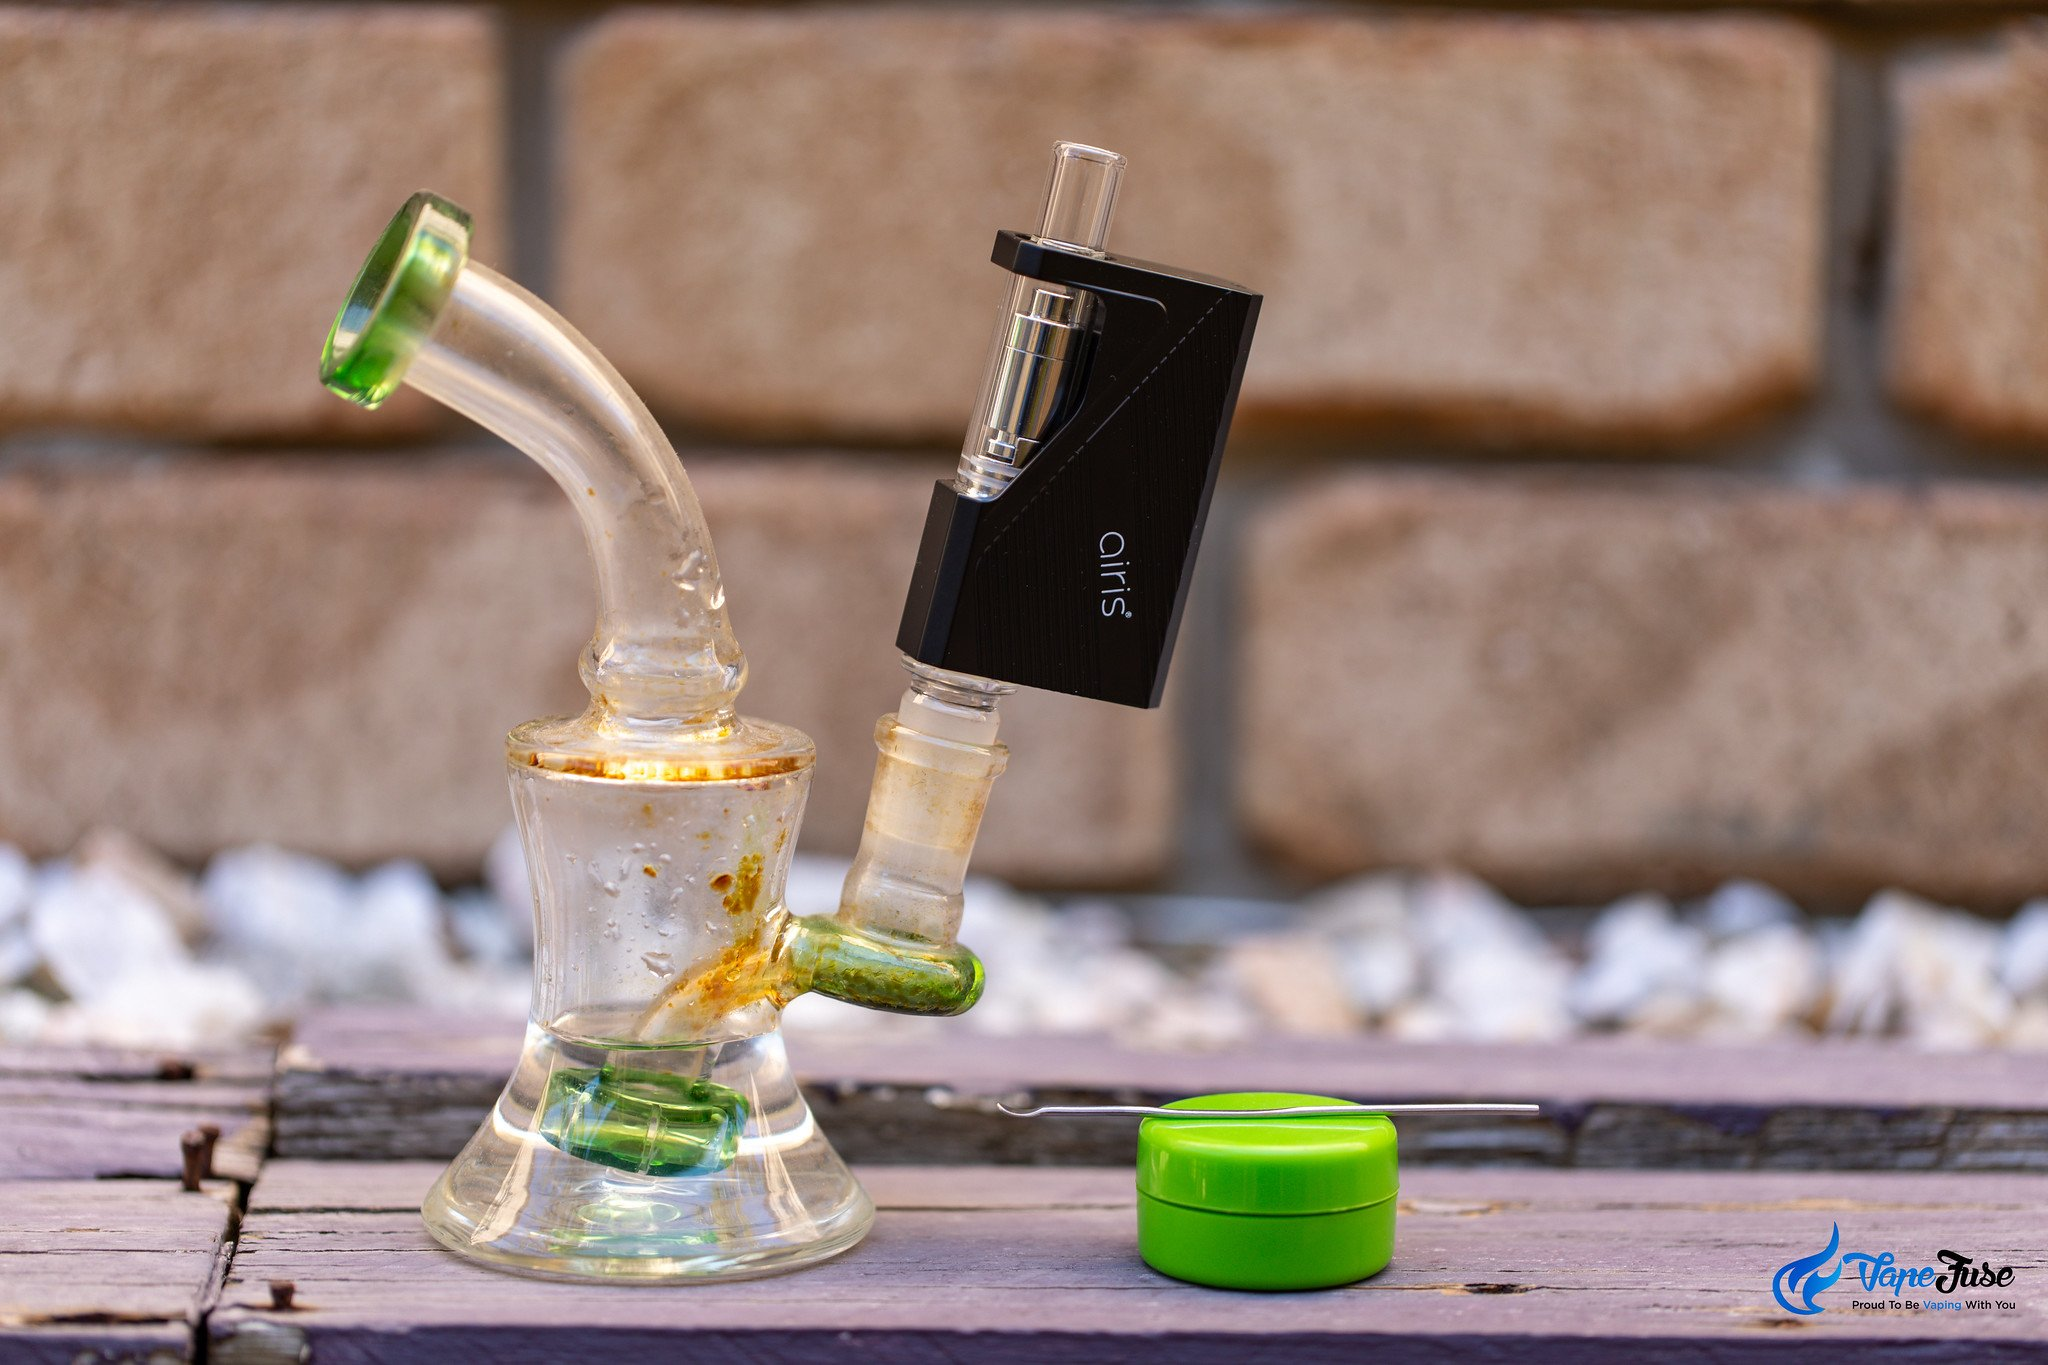 Airis Dabble Wax Vaporizer Review